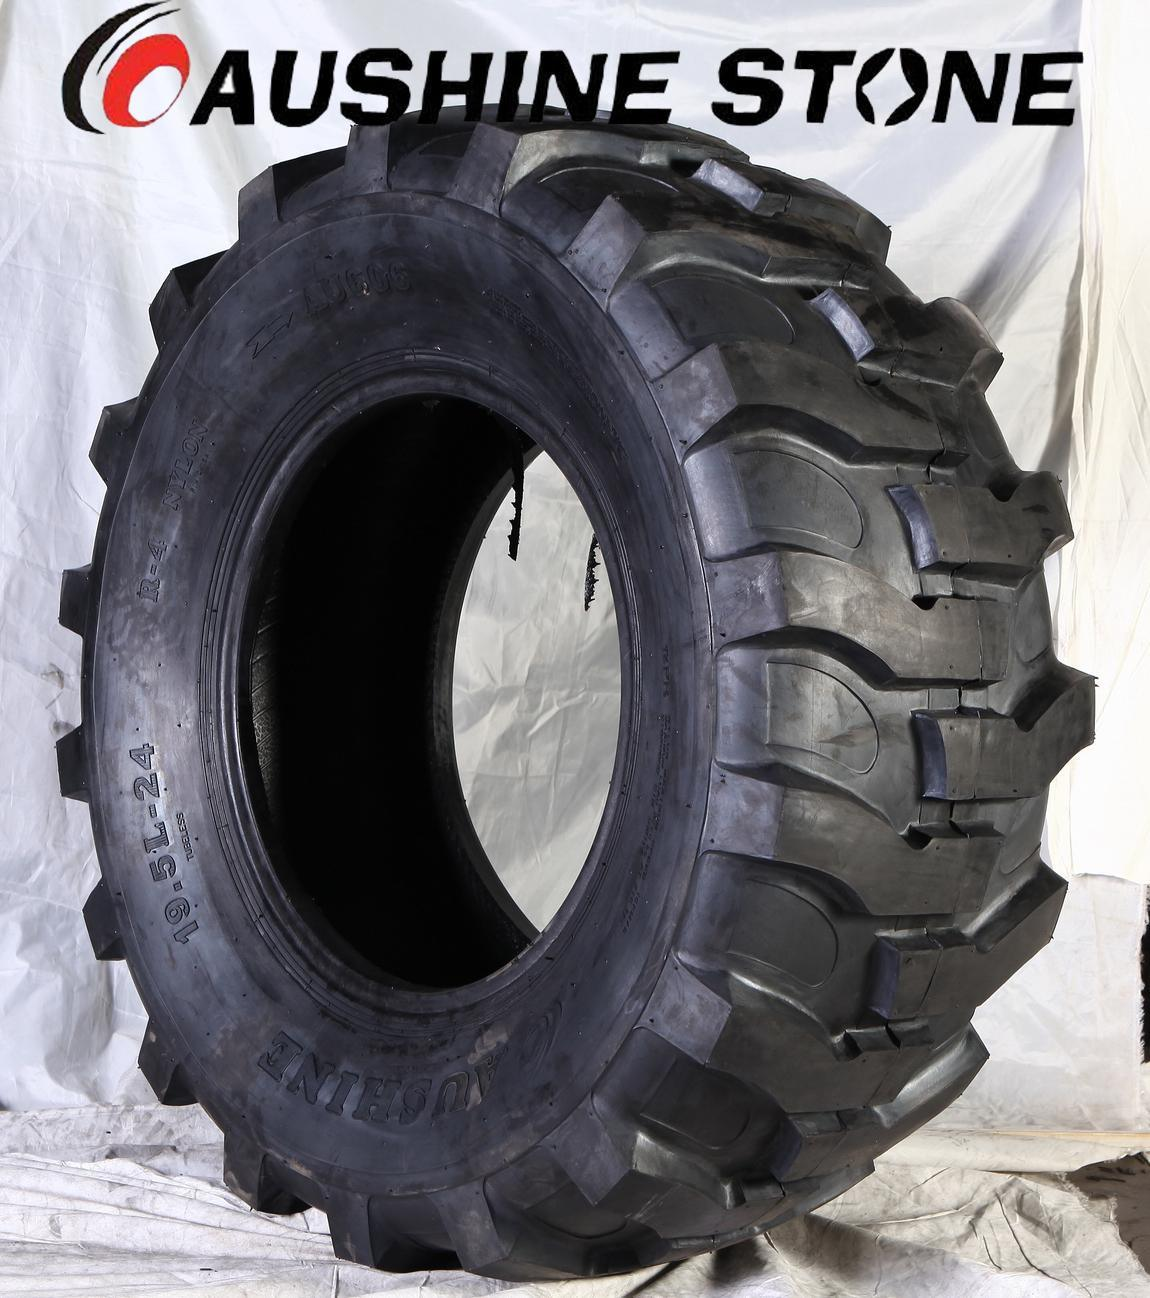 Tractor Rims 16 9 24 : China r tractor tires l